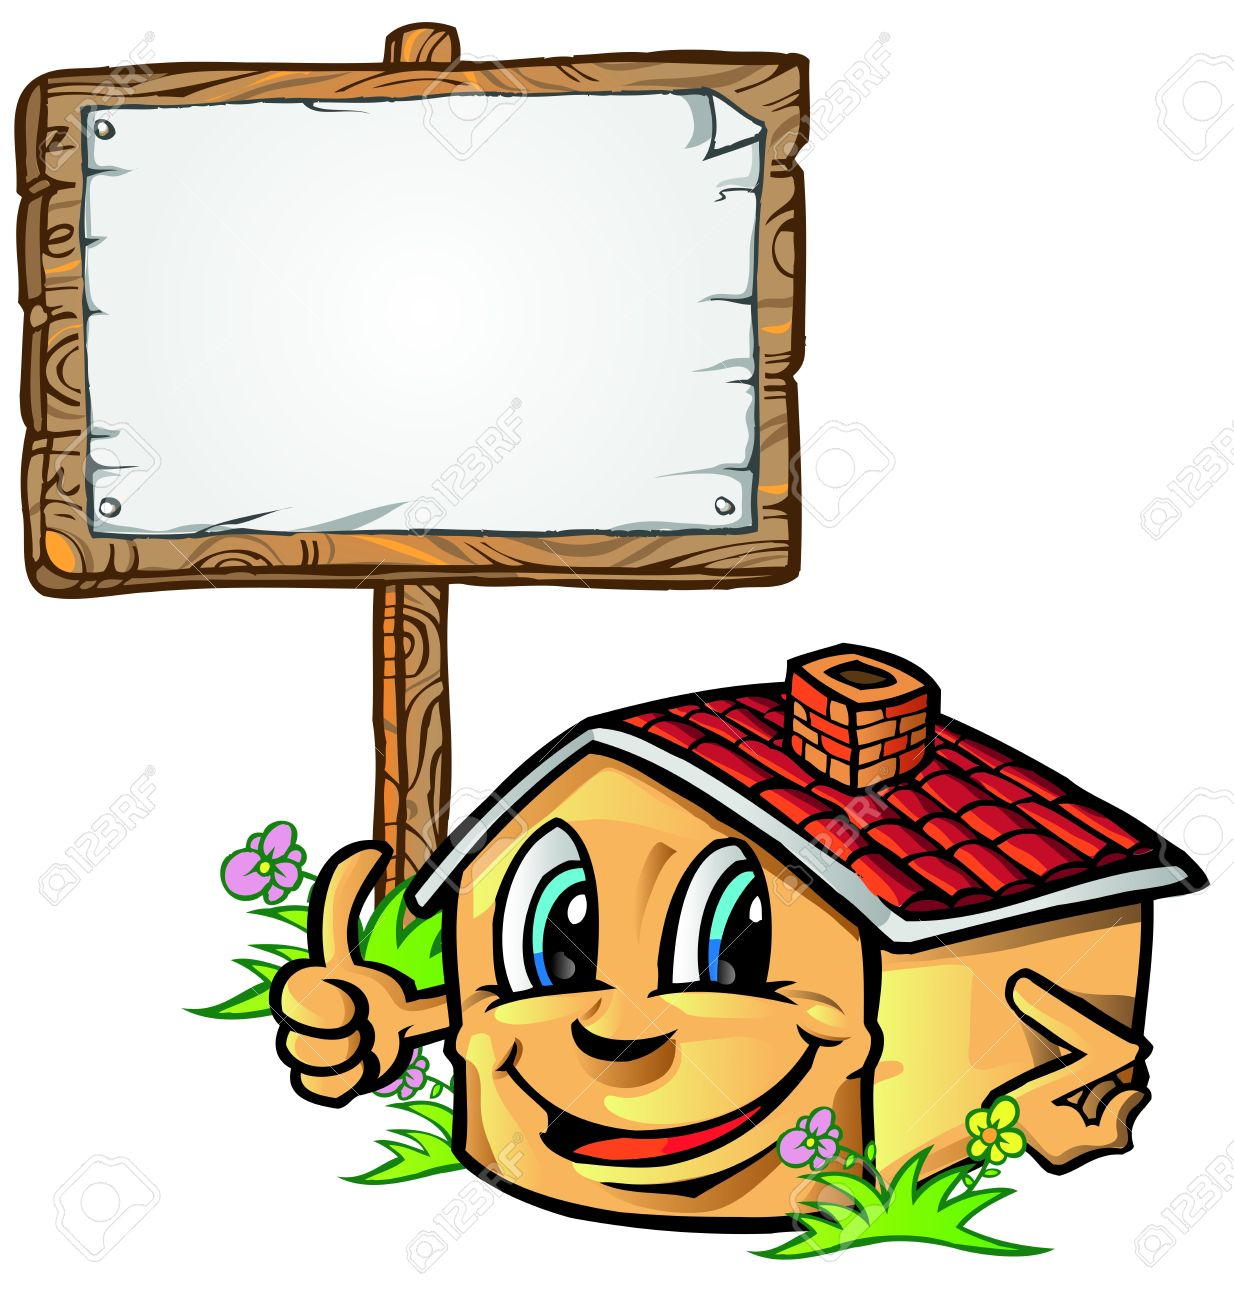 House Cartoon With Signboard Royalty Free Cliparts, Vectors, And.